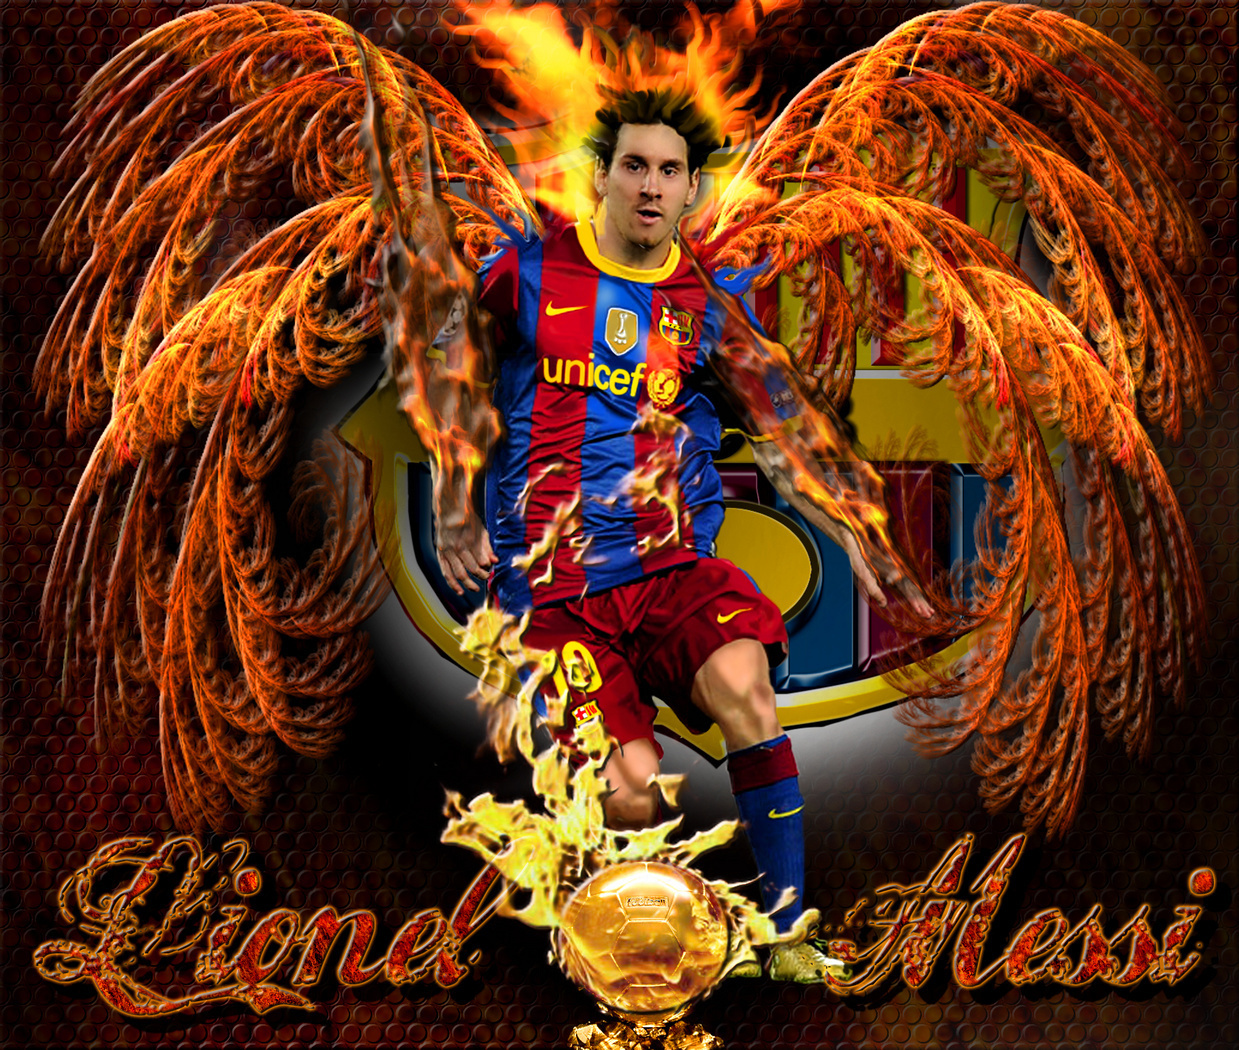 Lionel messi fc barcelona 2013 hd wallpapers all about hd wallpapers voltagebd Choice Image